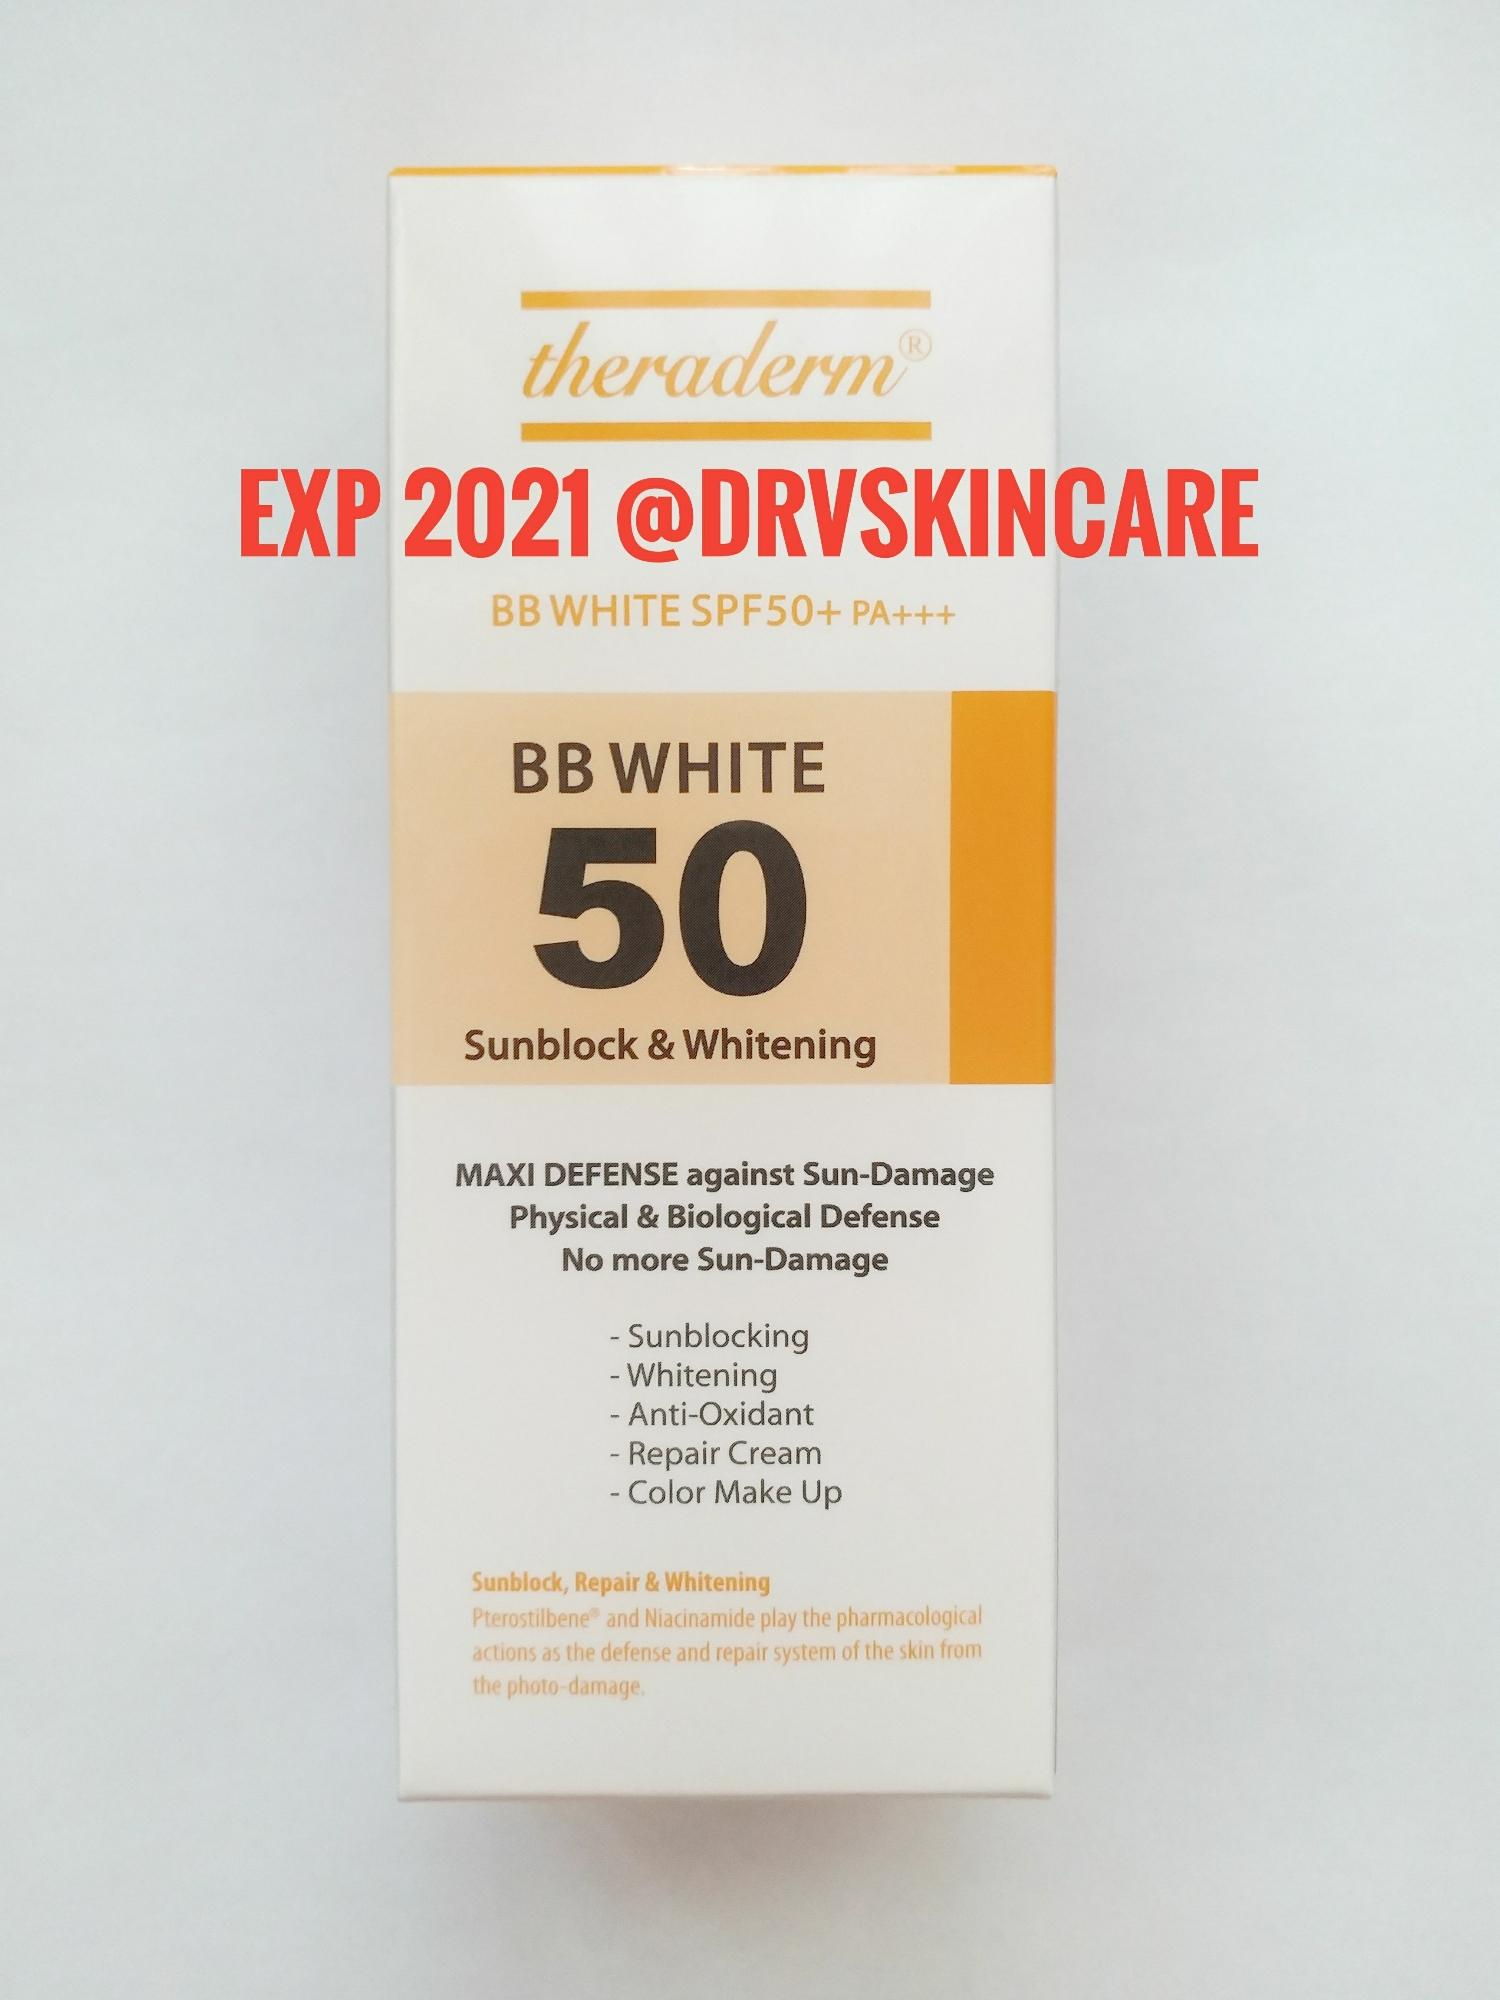 Theraderm BB White SPF50 Sunblock & Whitening [EXP 2021] BB Cream Made in